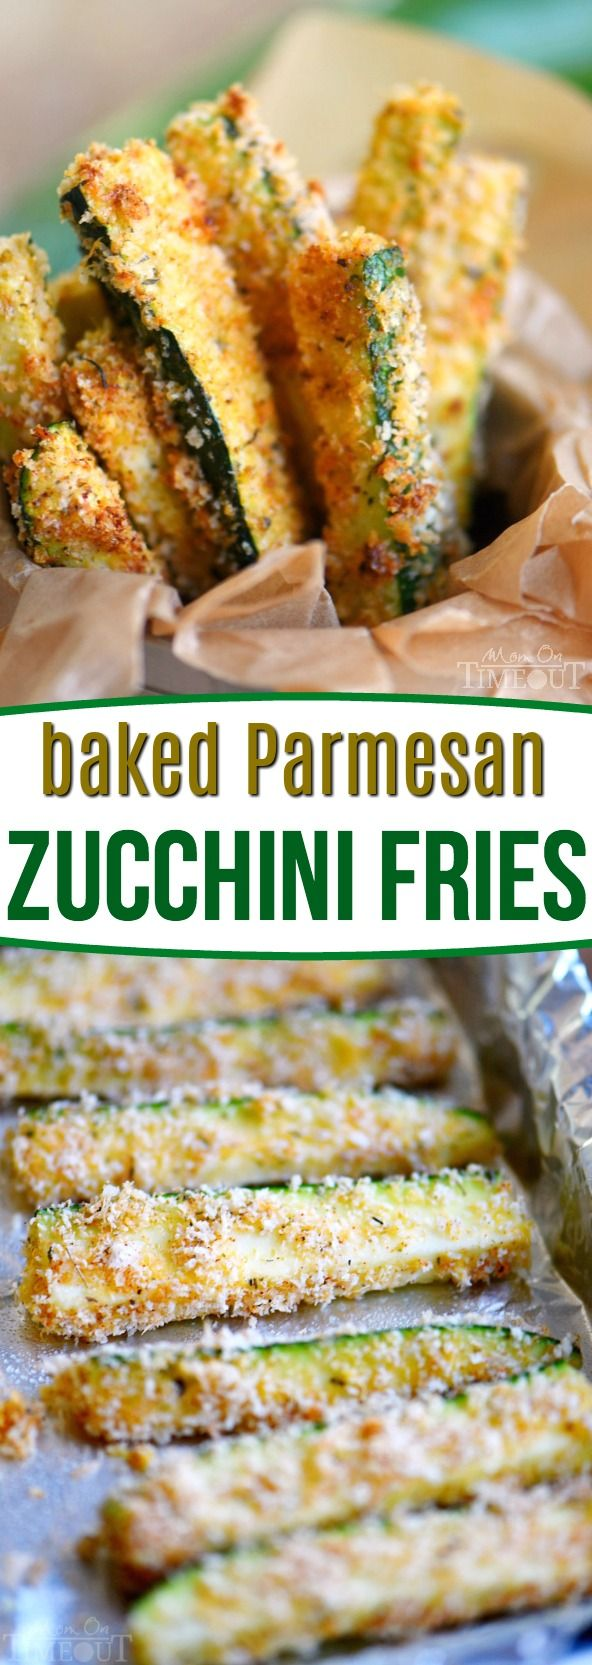 ***Baked Parmesan Zucchini Fries ~ are loaded with flavor and baked to golden perfection! The perfect way to use up your summer bounty!